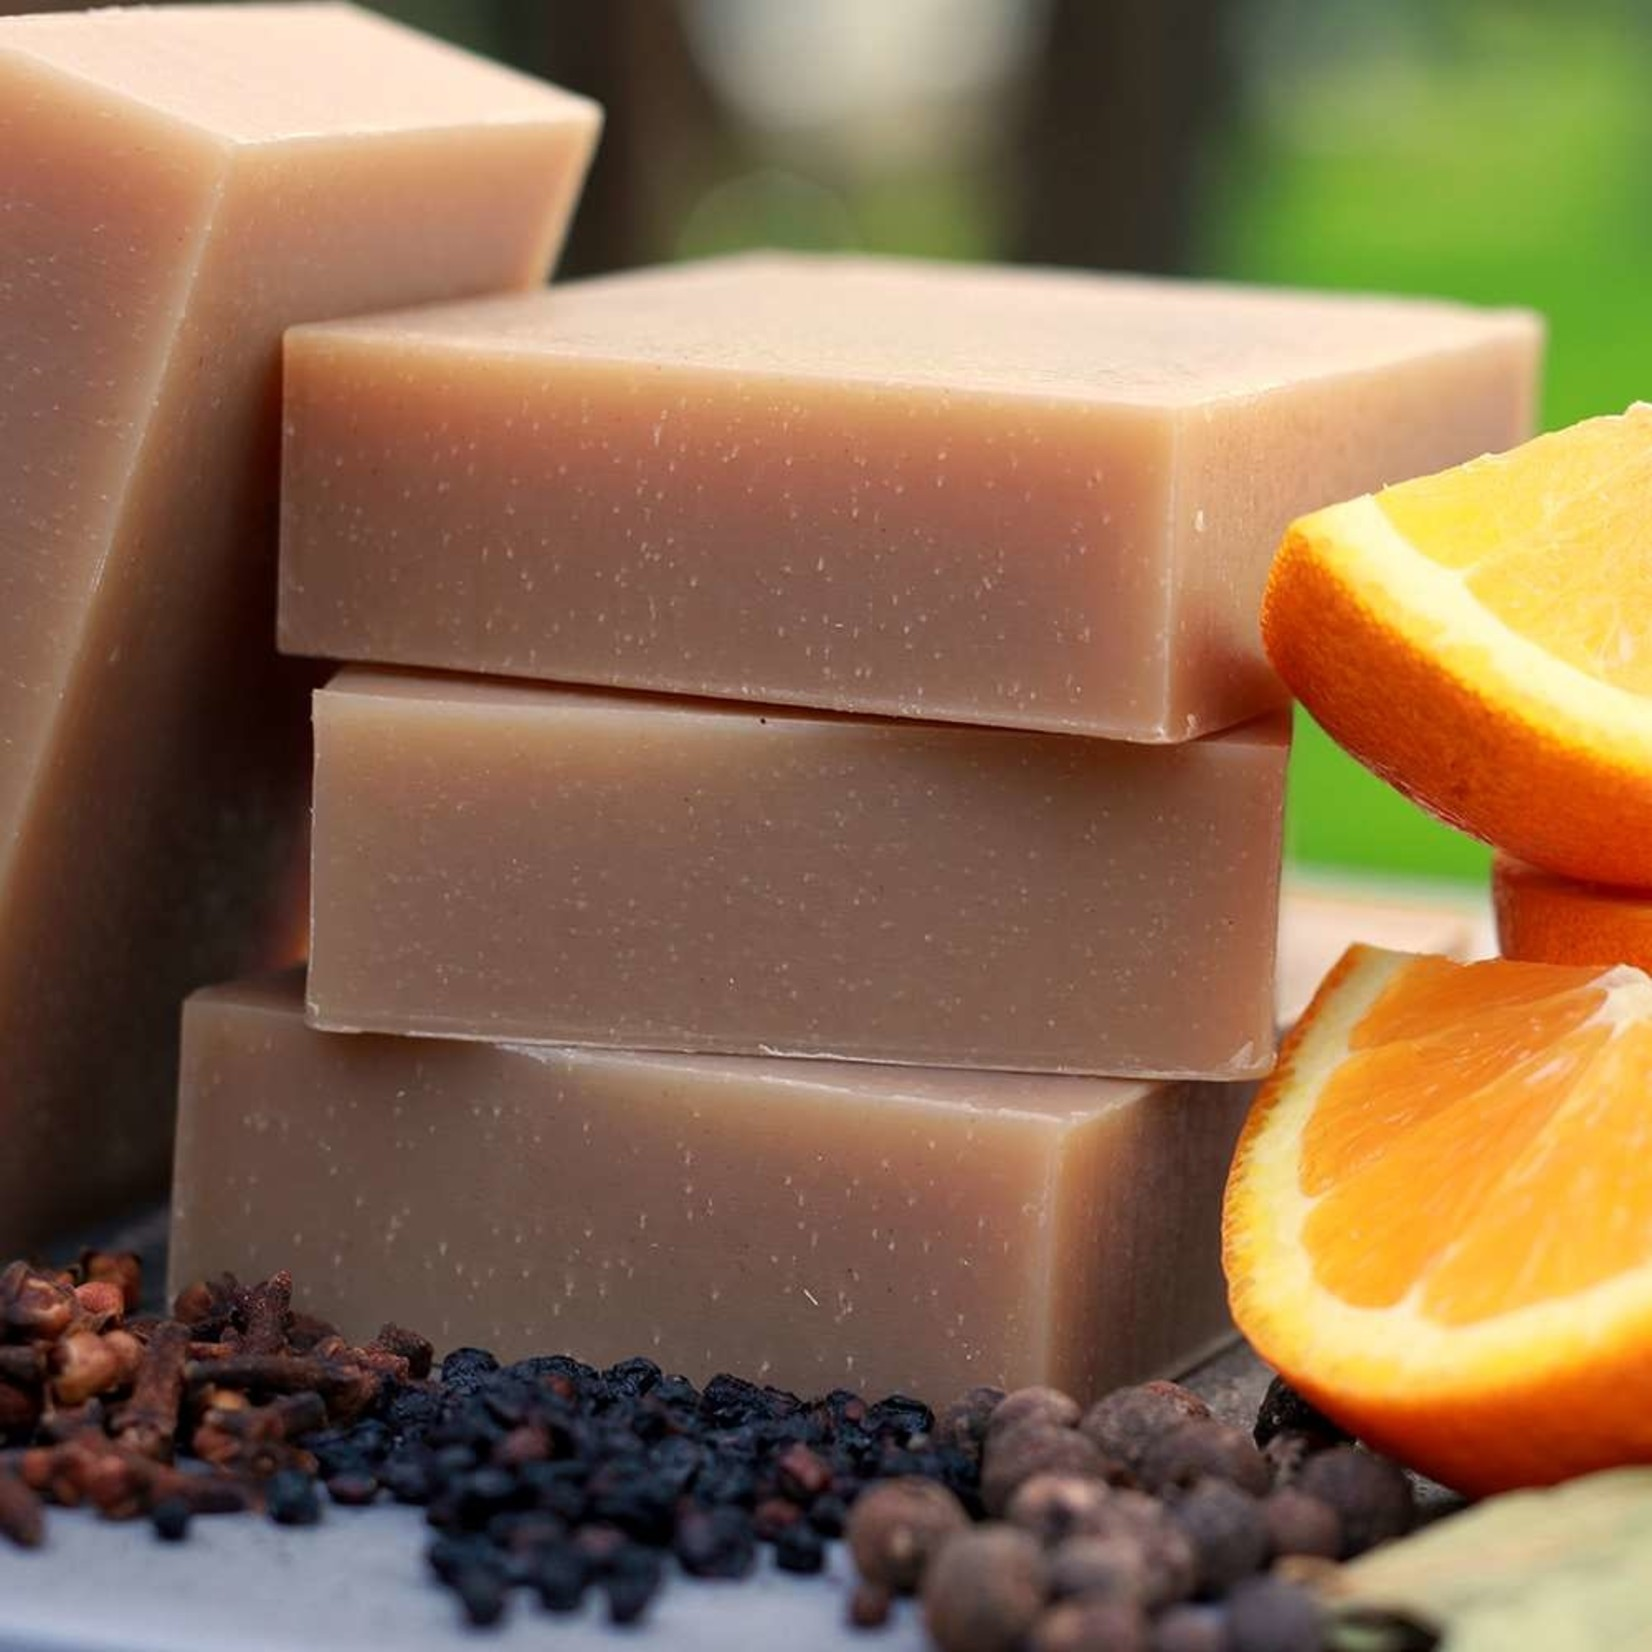 Chagrin Valley Soap and Salve Men's Bay Rum 5.6oz Soap Bar